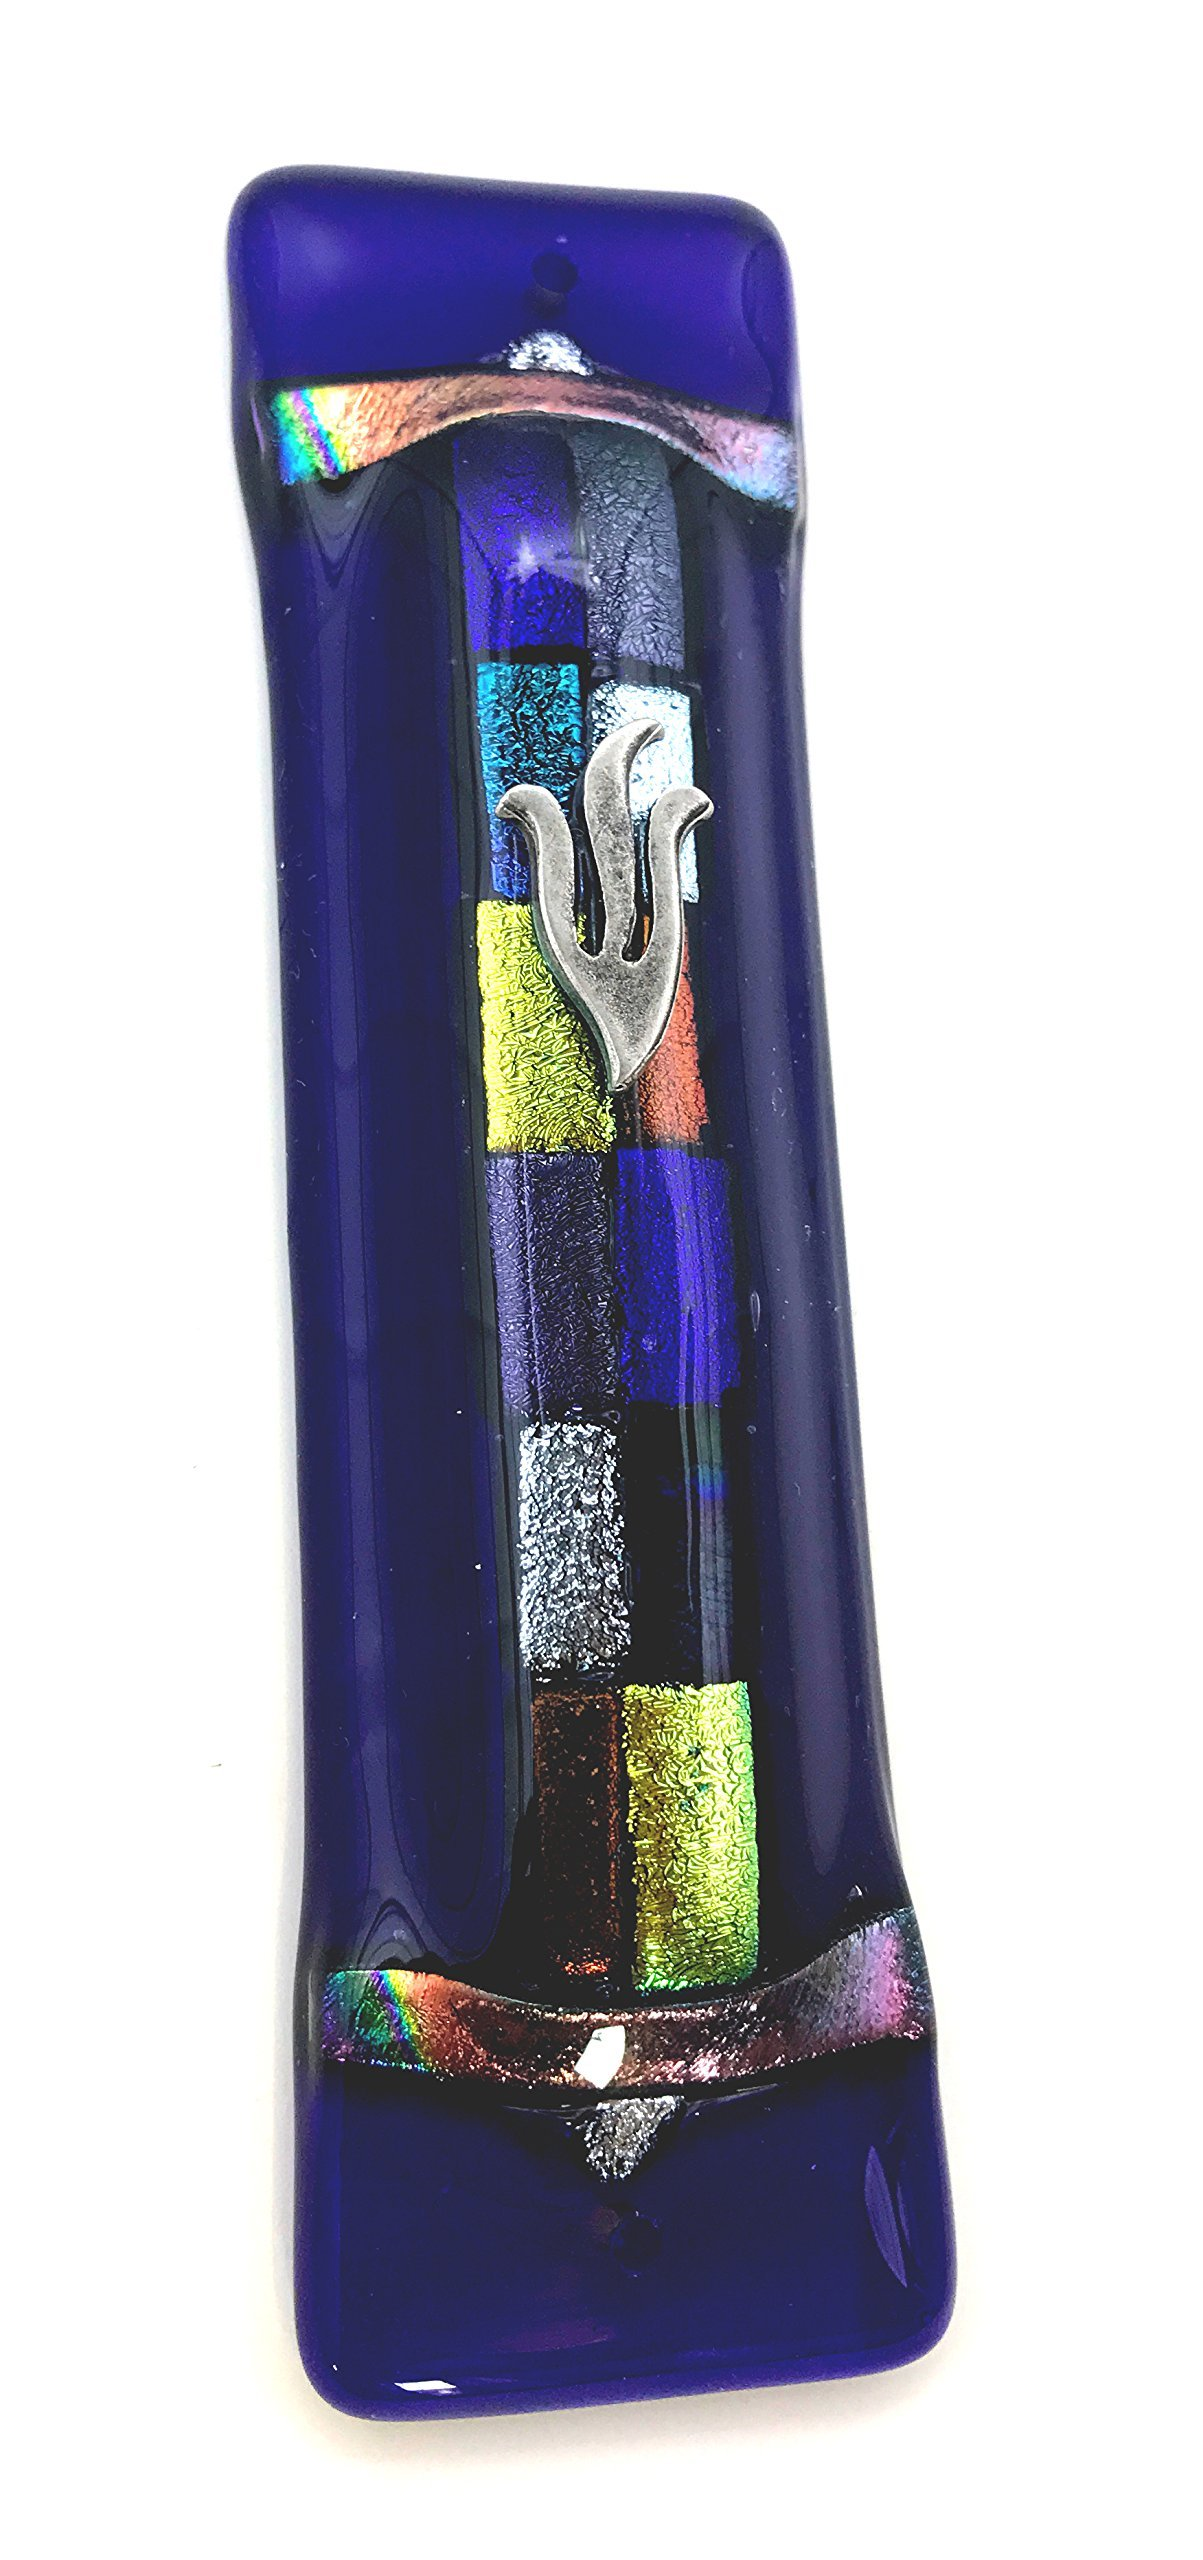 Tamara Baskin Art Glass Twelve Tribes Mezuzah - Midnight Blue Art Glass with Twelve Shimmering Fused Glass Gift Box and Non-Kosher Scroll Included HAND MADE IN THE USA by